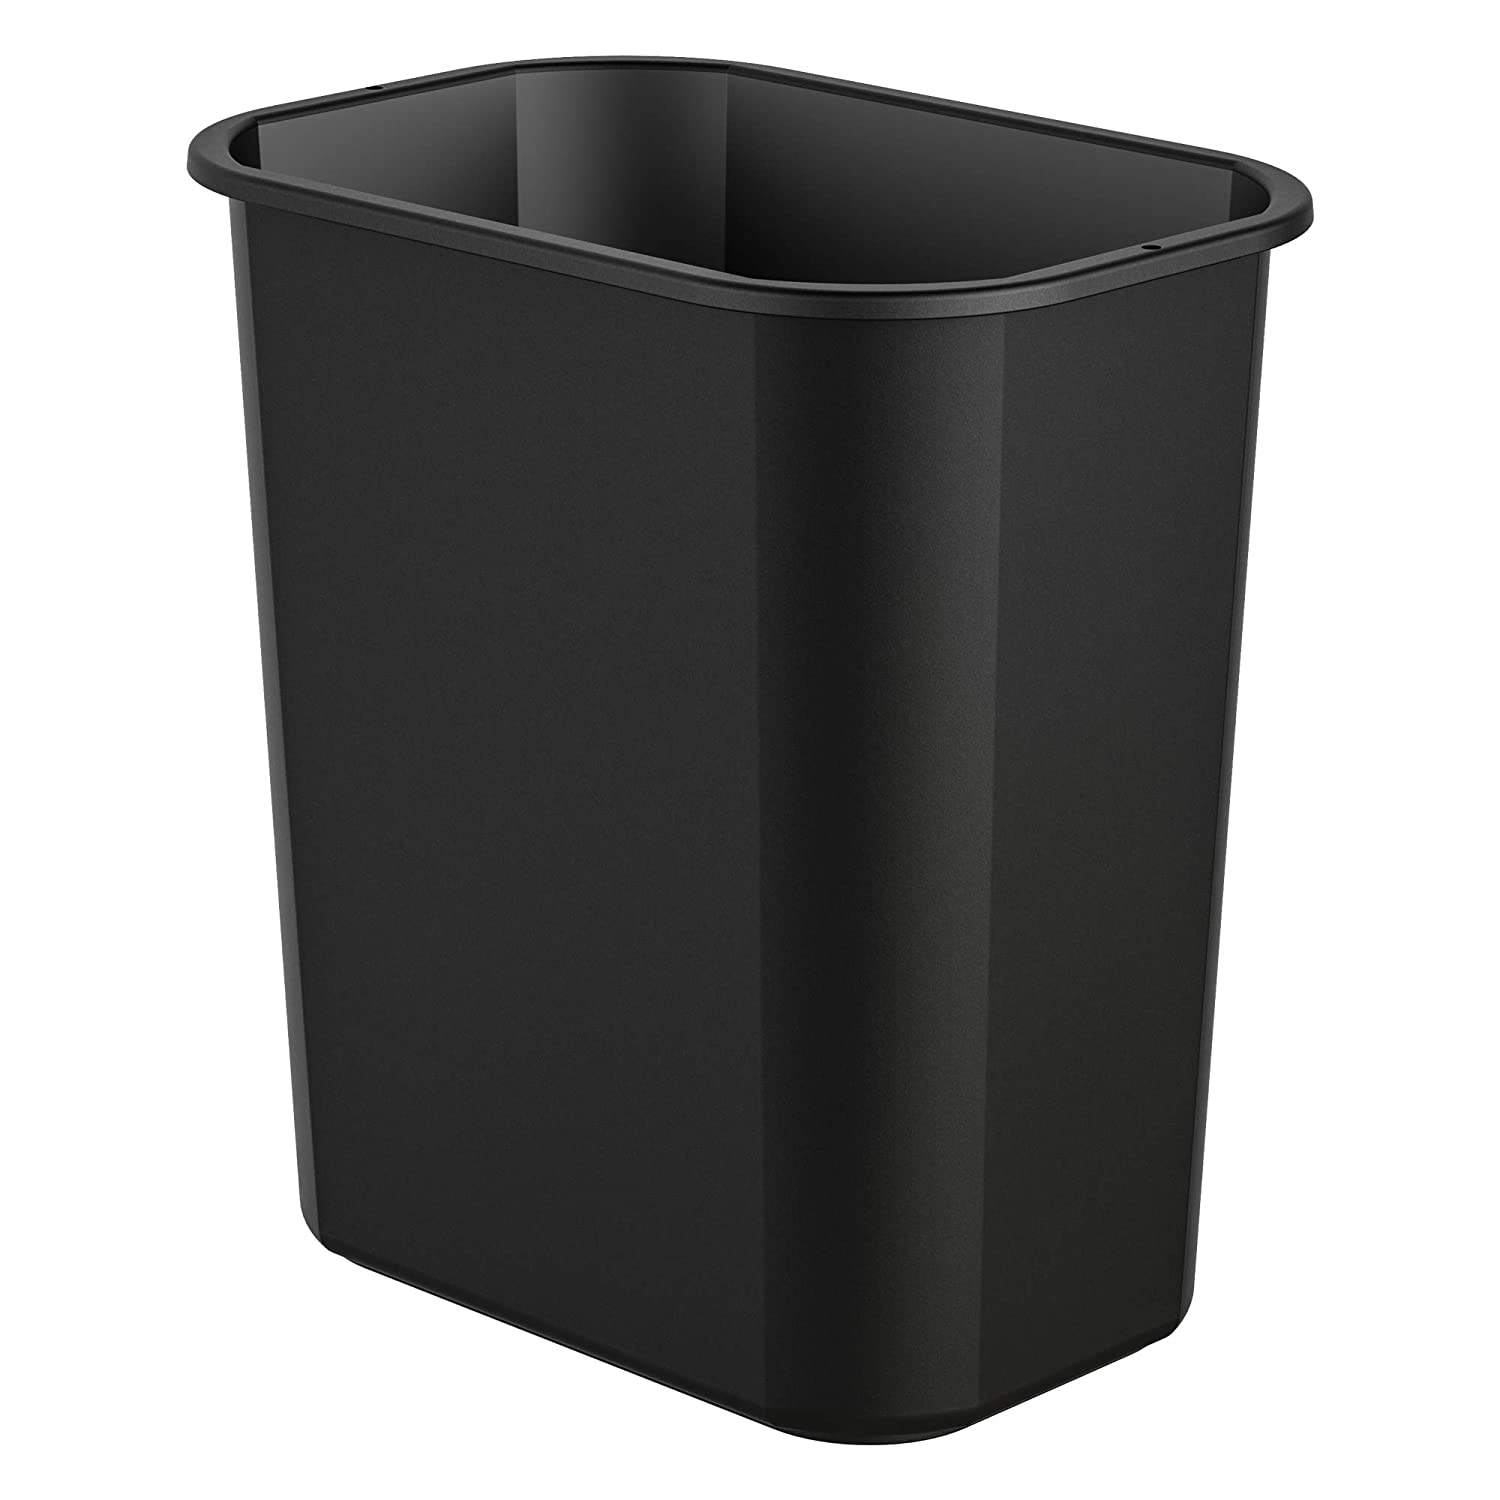 AmazonCommercial 3 Gallon Commercial Waste Basket, Black, 2-Pack